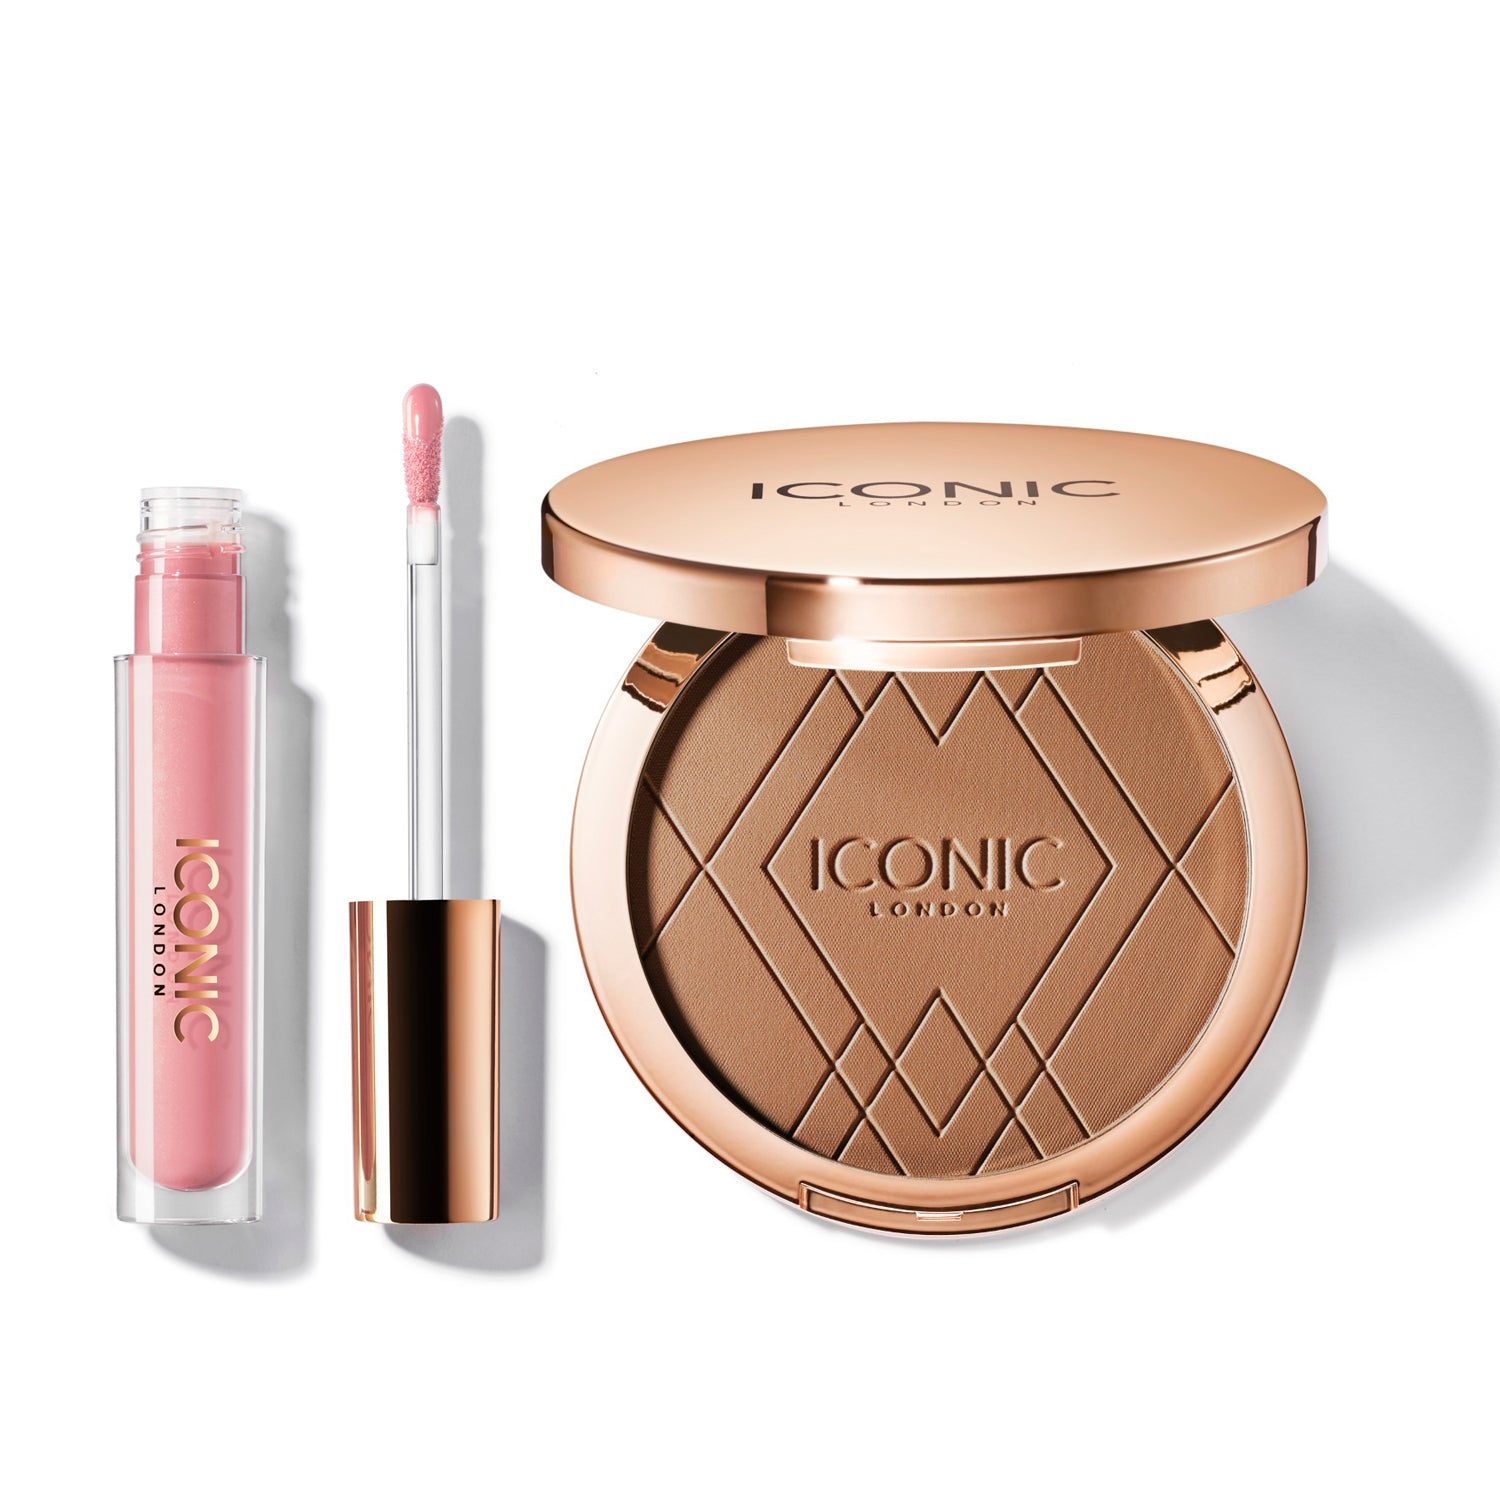 Ultimate Bronzing Powder and Gloss